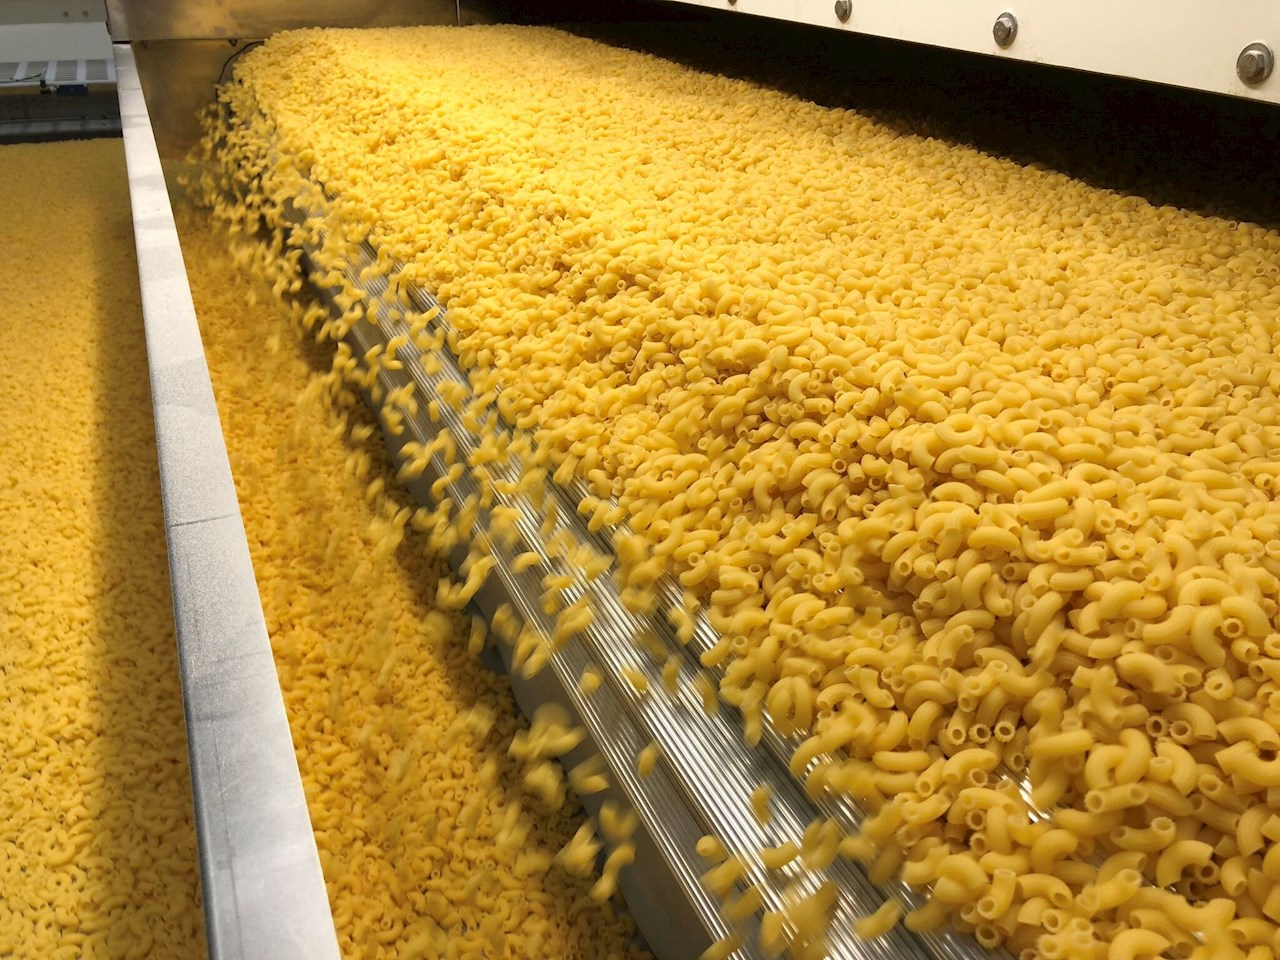 Prodcution line at Gyermelyi. In 2019 the company plans on producing some 36,000 tons of pasta.